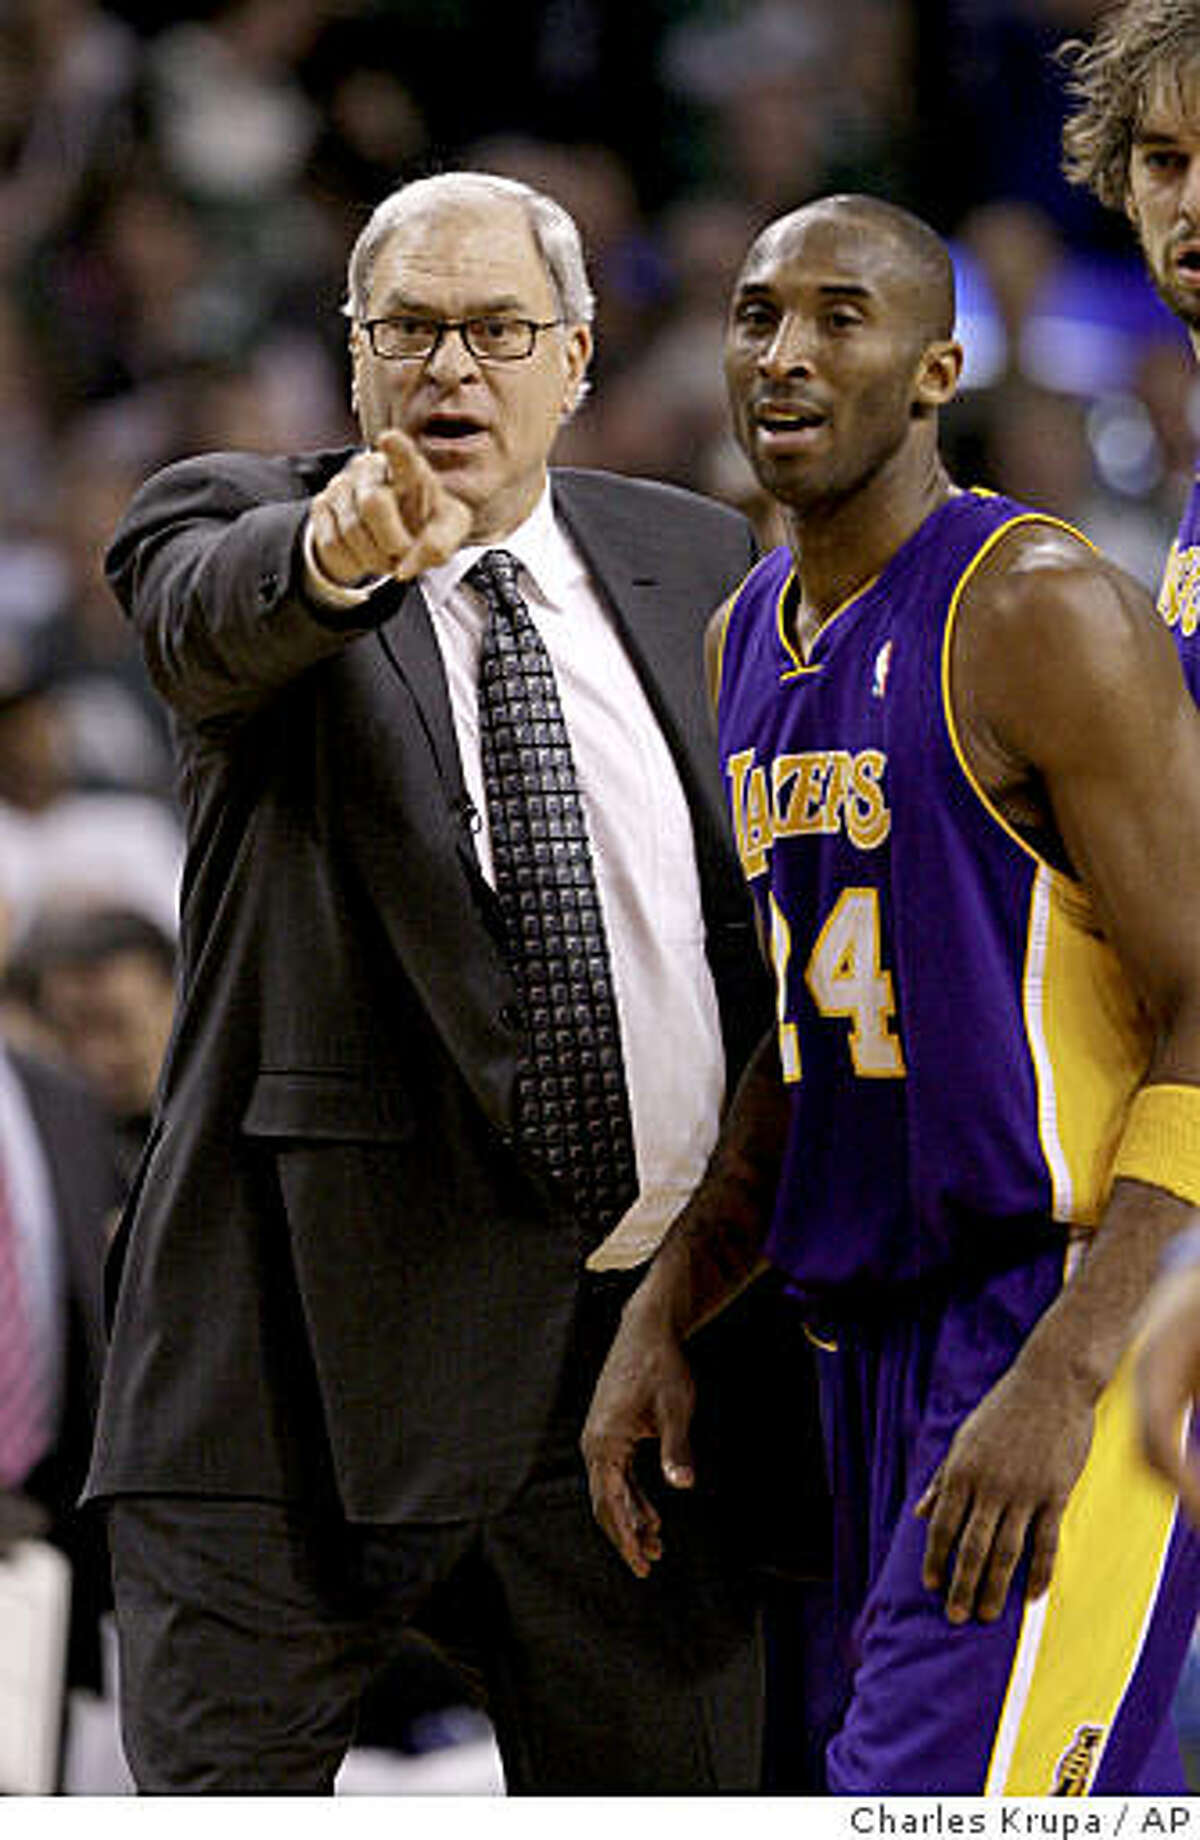 FILE - In this Feb. 5, 2009, file photo, Los Angeles Lakers head coach Phil Jackson, left, and Kobe Bryant talk during their basketball game against the Boston Celtics in Boston. Bryant could become an unrestricted free agent next month. What's more, coach Phil Jackson hasn't said if he's coming back. (AP Photo/Charles Krupa, File)